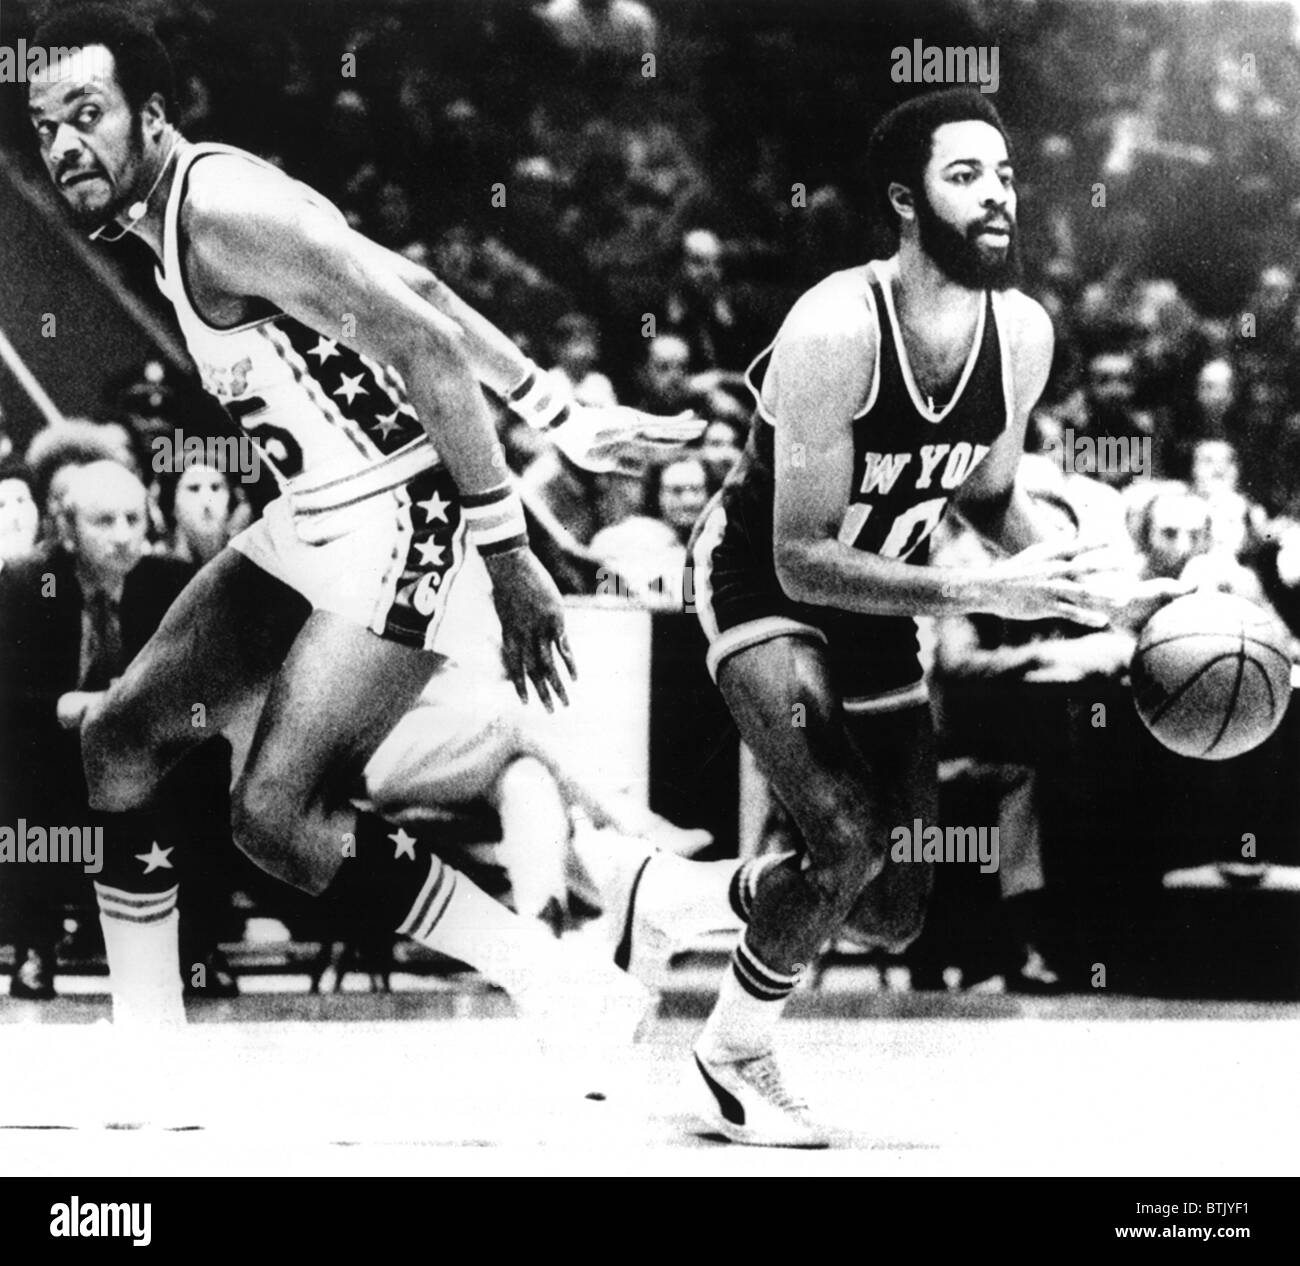 Philadelphia Sixers' Bob Rule (L), & NY Knicks' Walt Frazier (R), with the basketball, in their game - Stock Image